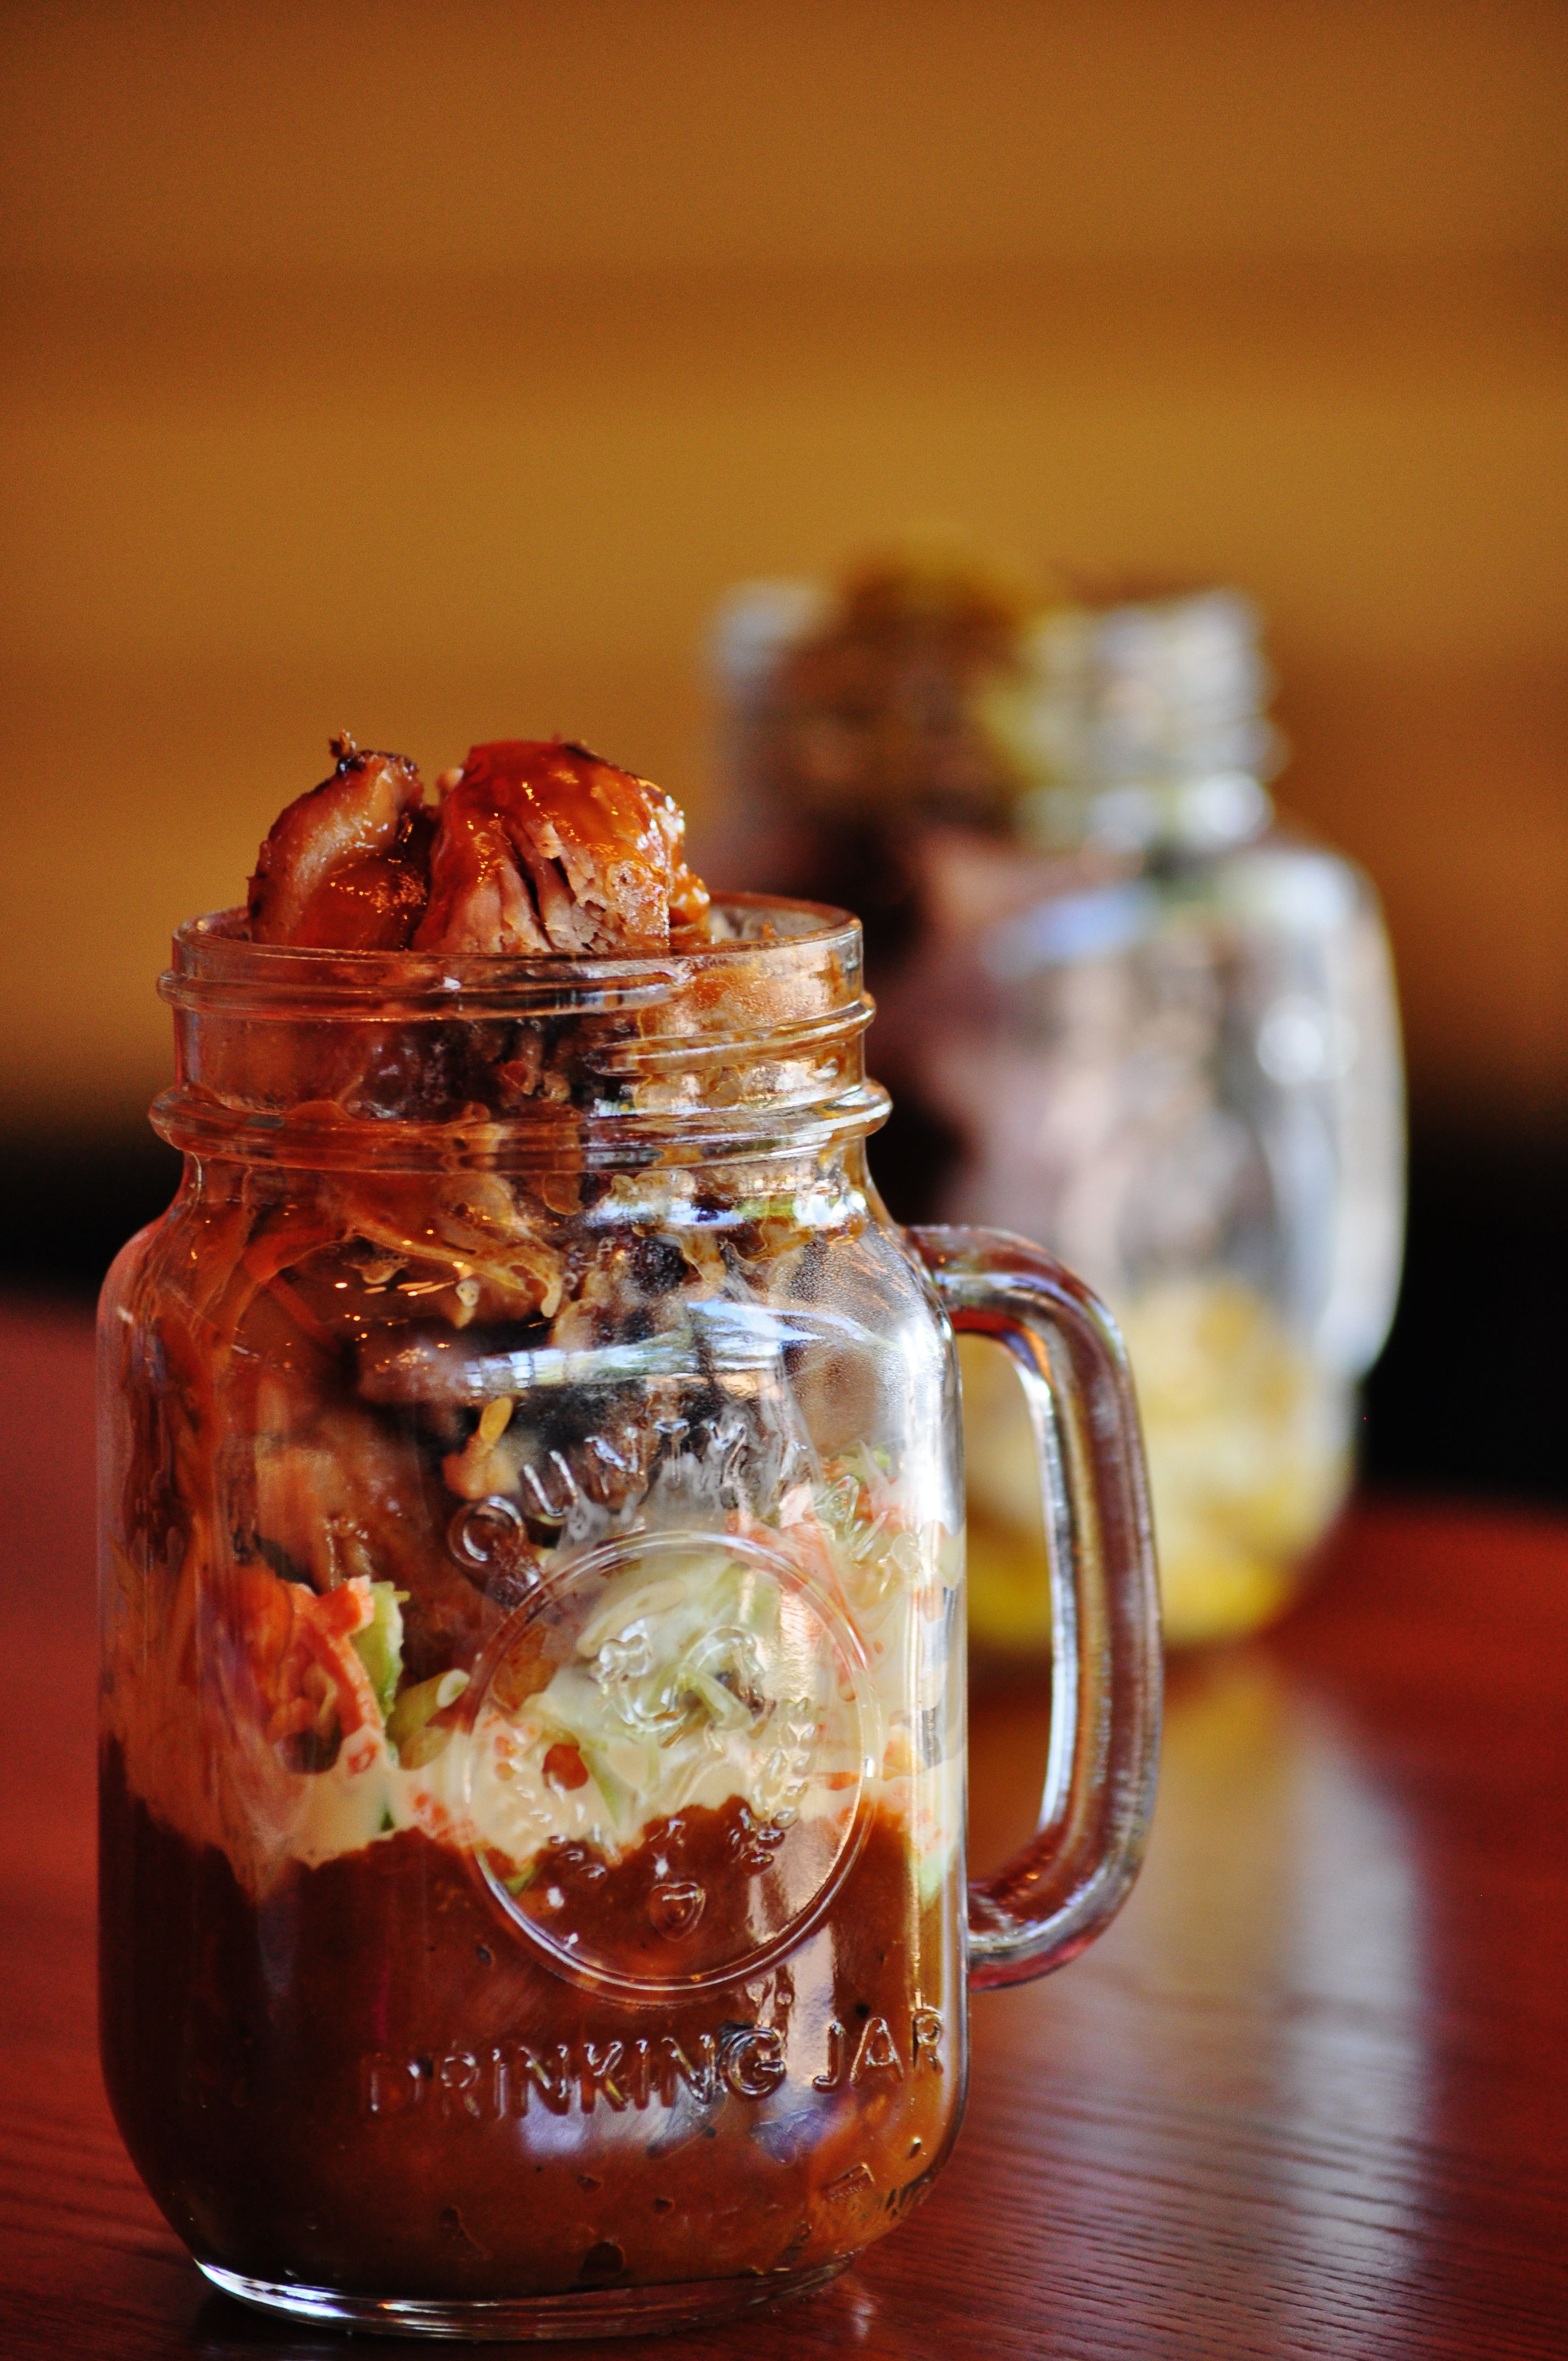 Featured On The Food Network The Que Stacked Mason Jar Pulled Pork Southern Slaw Bbq Baked Beans At Ten Park Lanes Yup Good Food At The Bowling